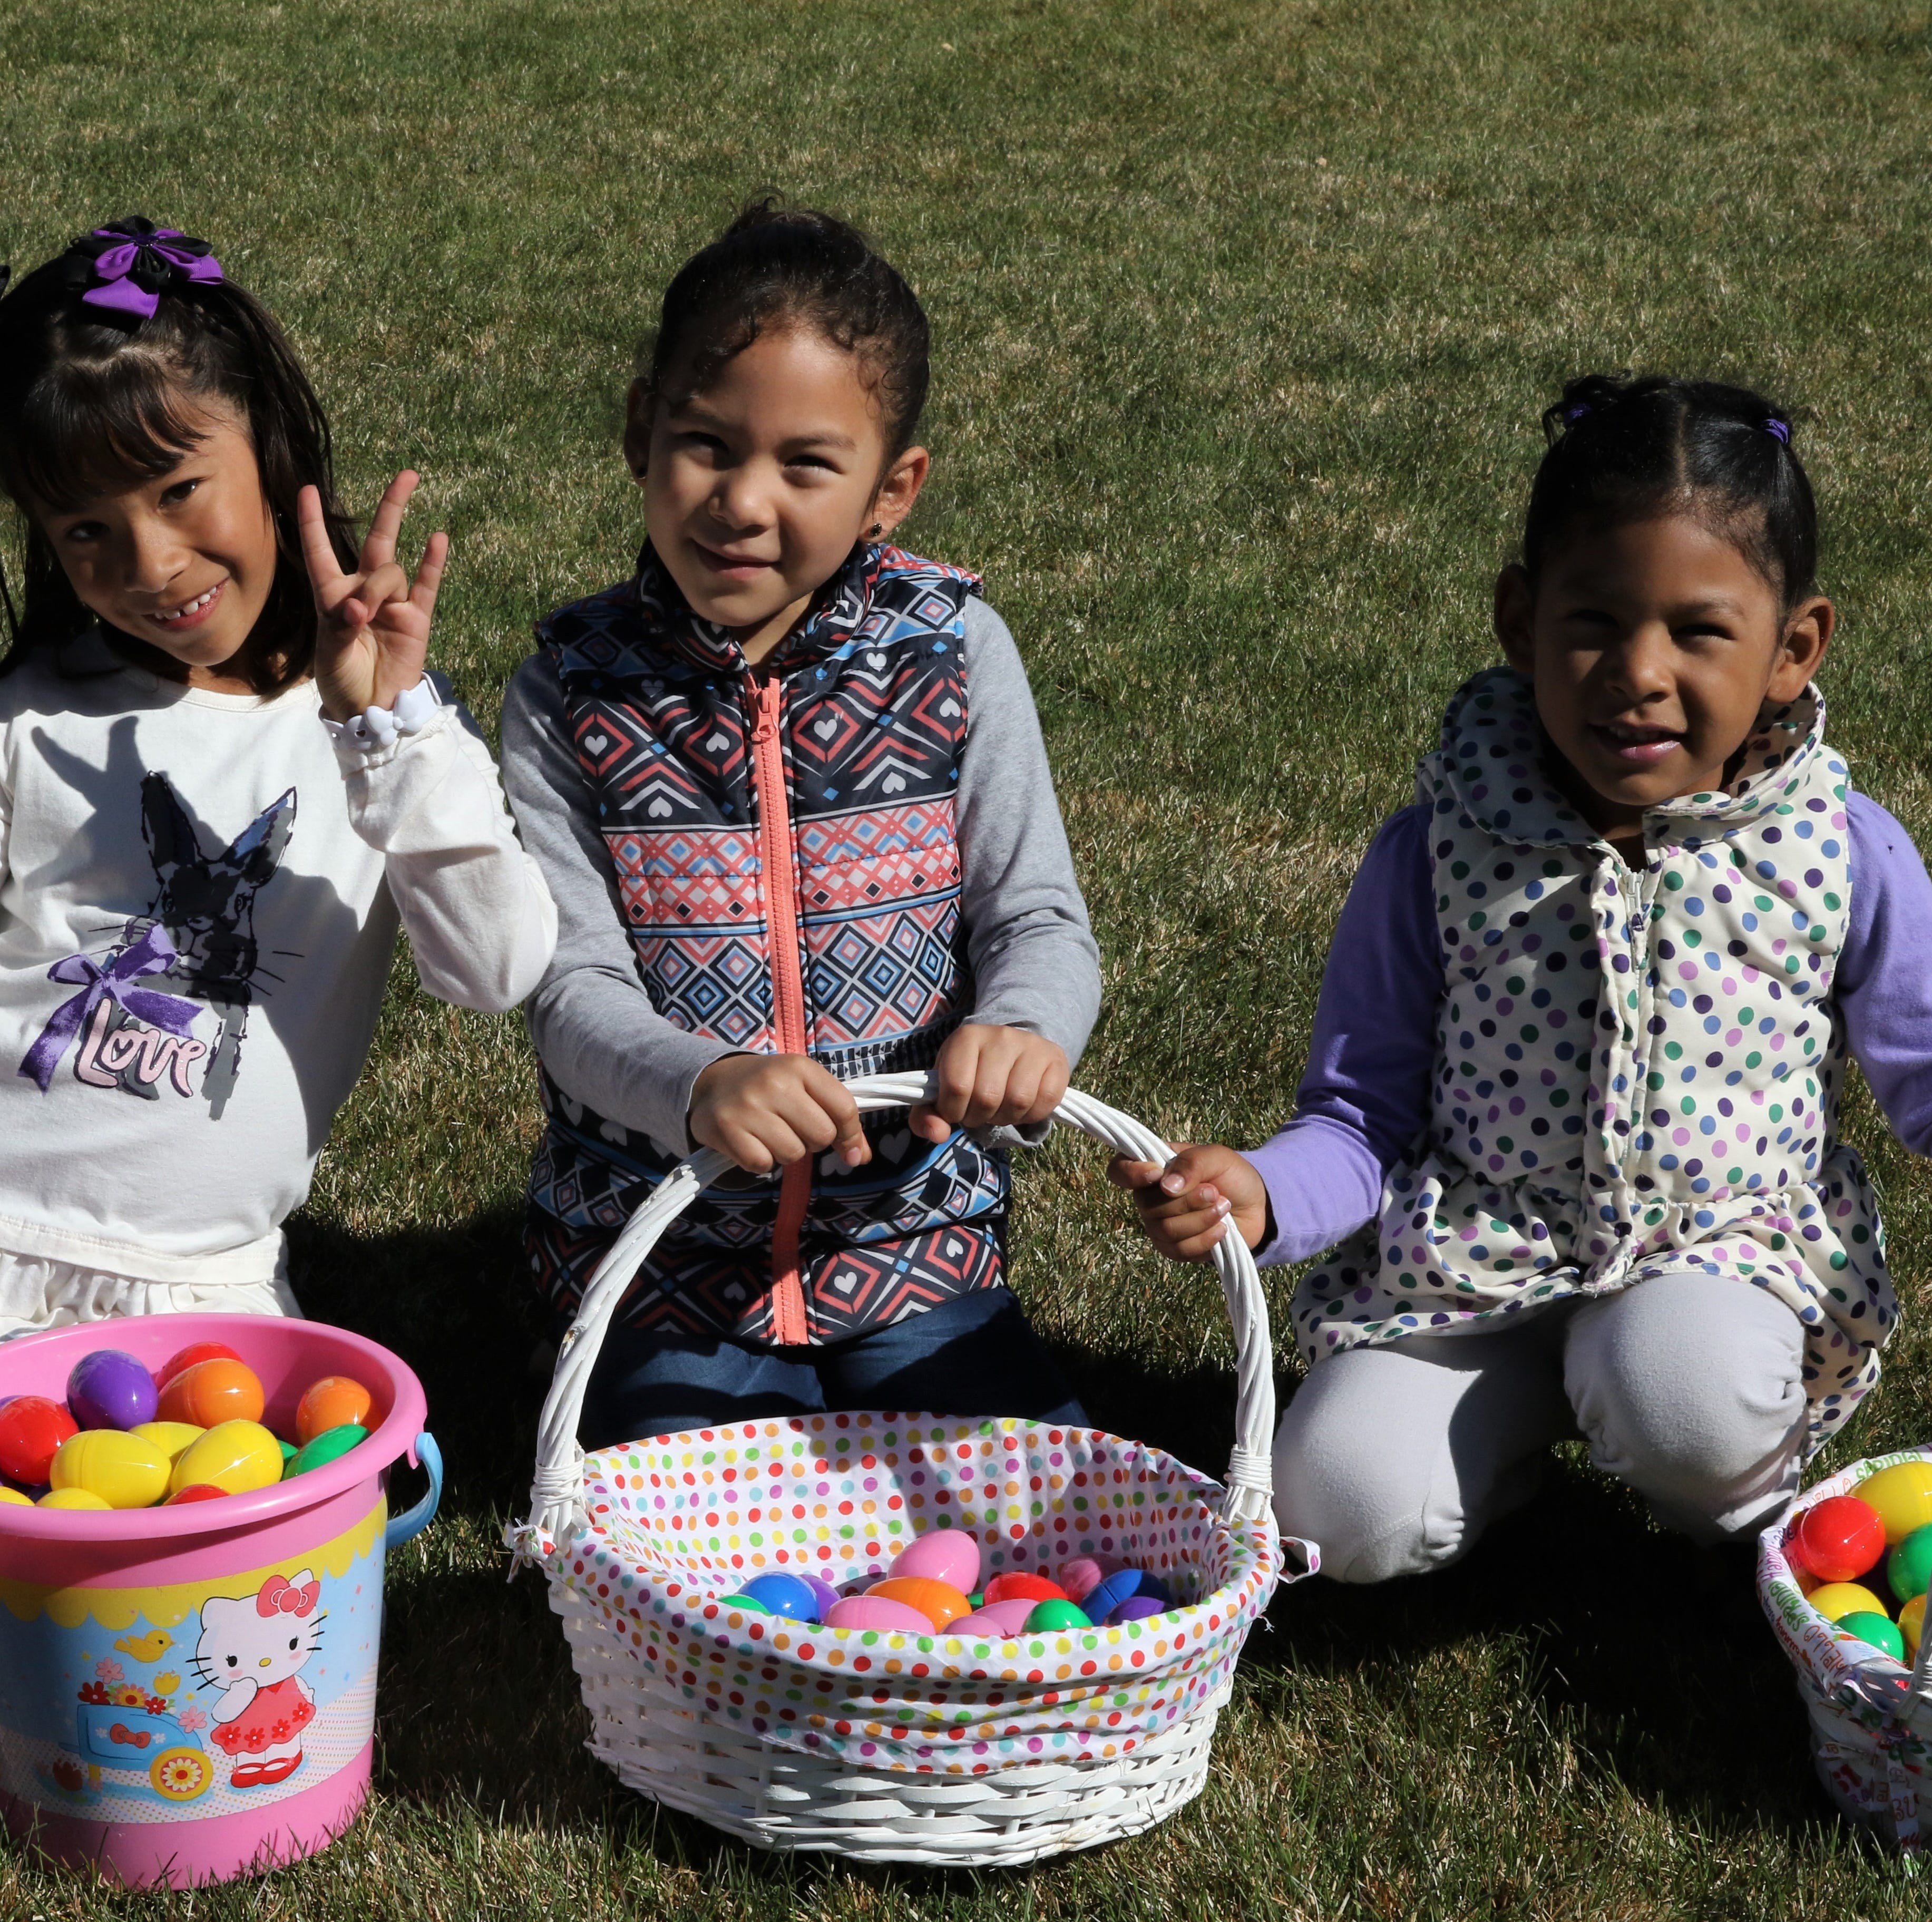 Easter egg hunts provide fun for families